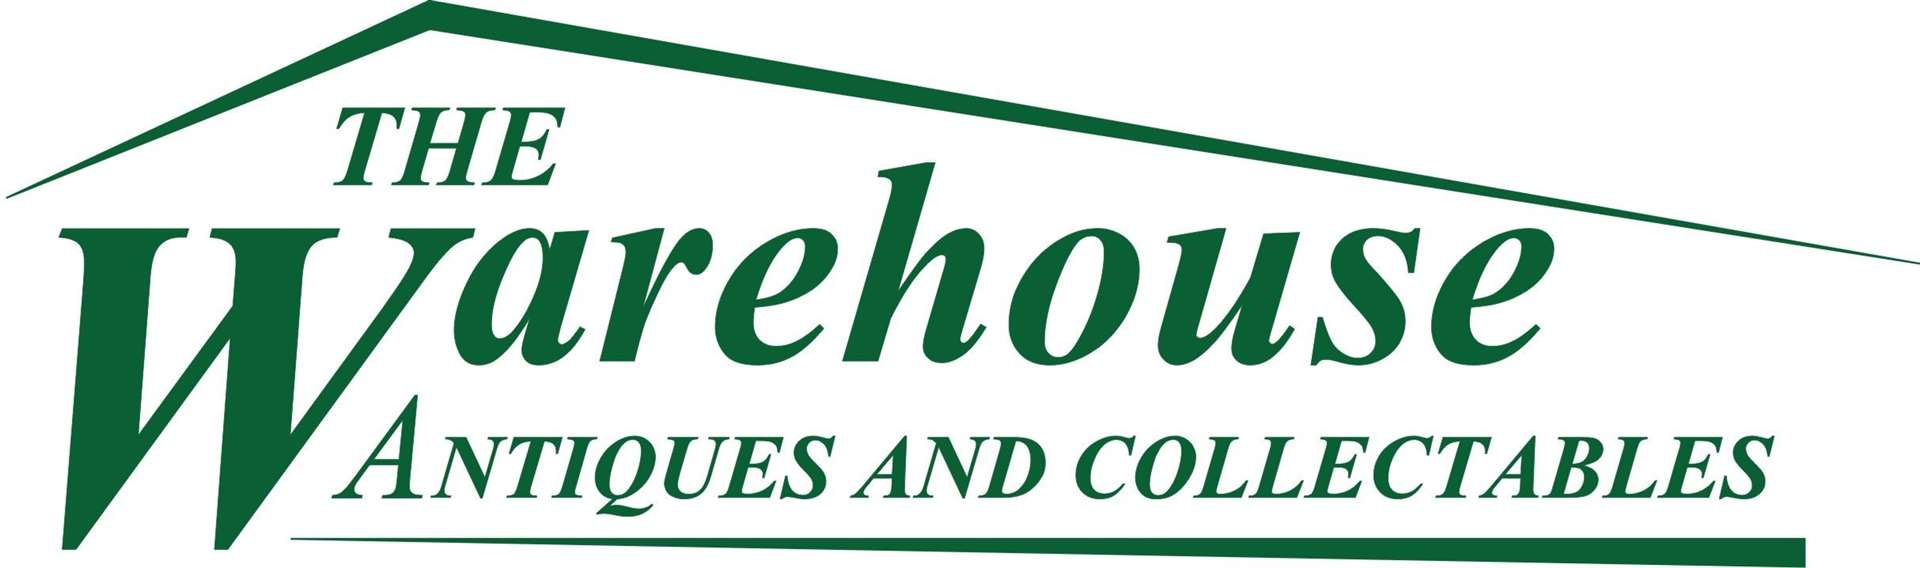 The Warehouse Antiques and Collectables at Setchey